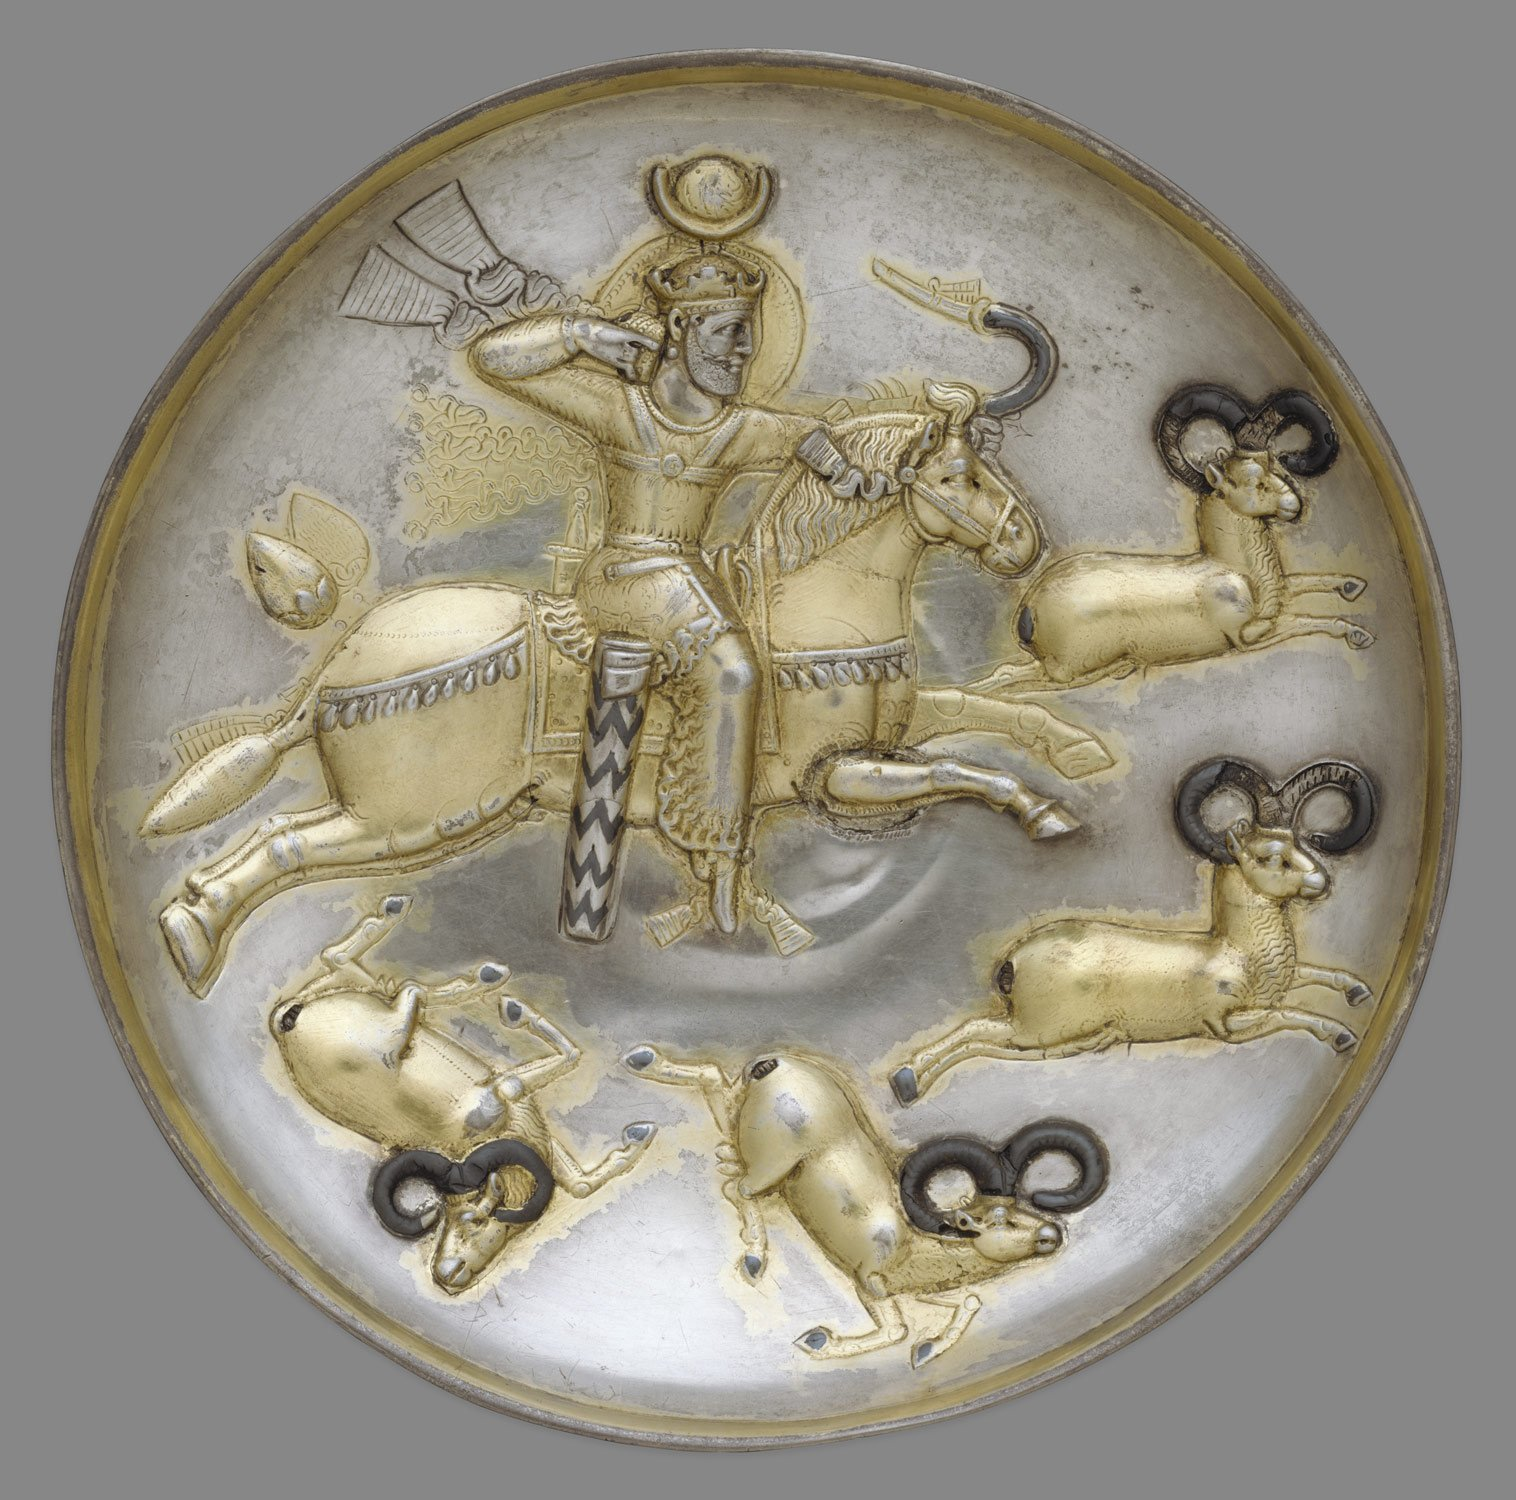 Plate with king hunting rams, #Iran, #Sasanian, mid-5th–mid-6th C., Silver and mercury gilding. The Sasanian king on this plate has various royal attributes: a crown and fillet, covered globe, nimbus with beaded border, and beaded chest halter with fluttering ribbons. (metmuseum) https://t.co/xG72xmp8NS